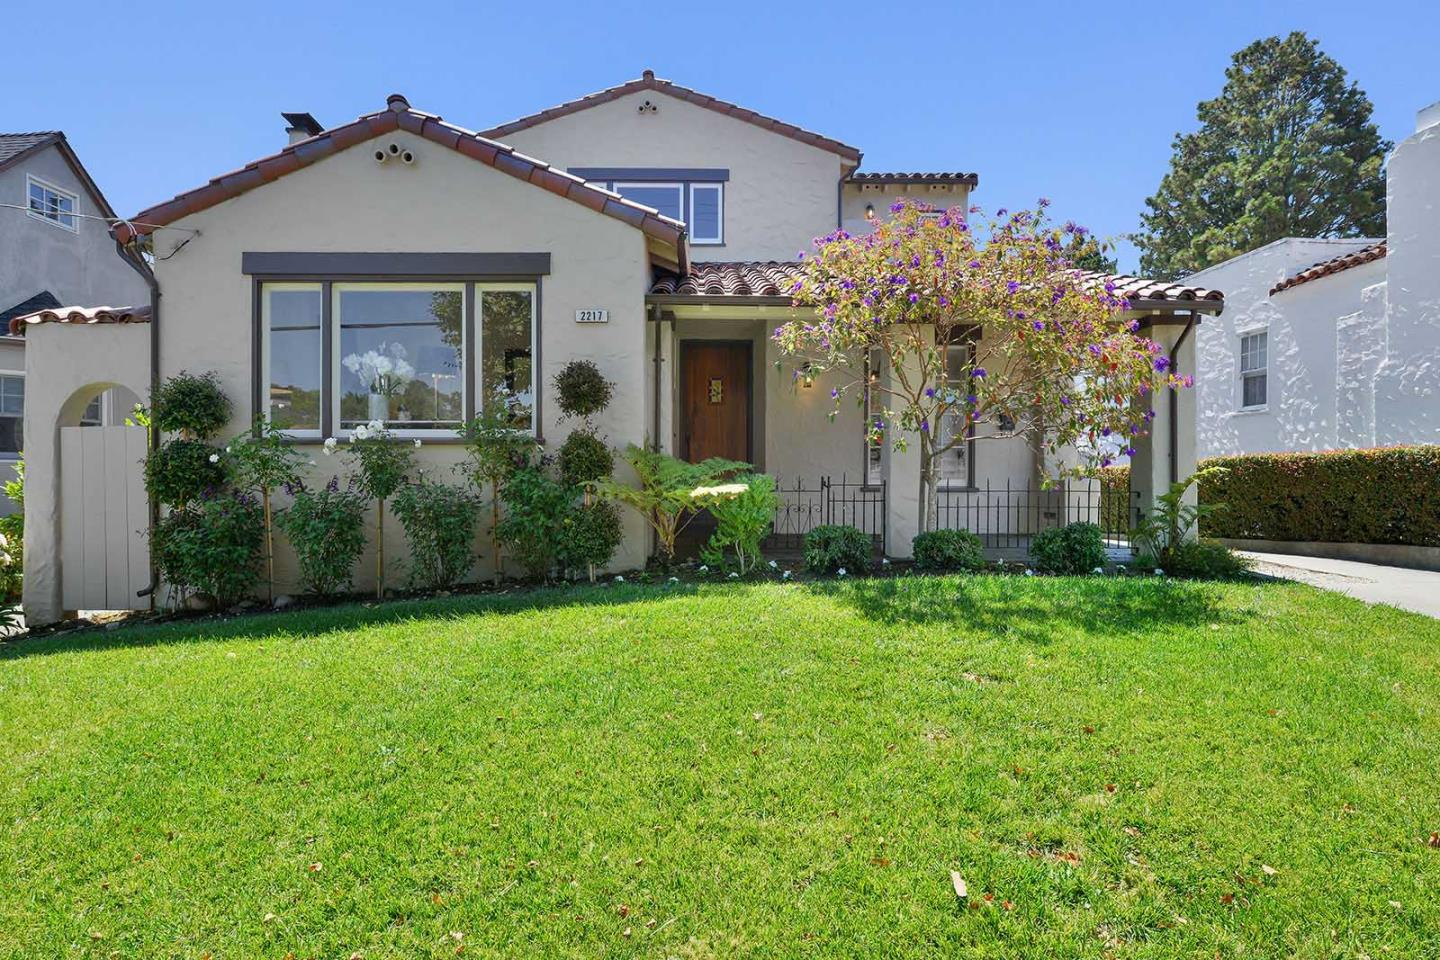 Single Family Home for Sale at 2217 Adeline Drive Burlingame, California 94010 United States